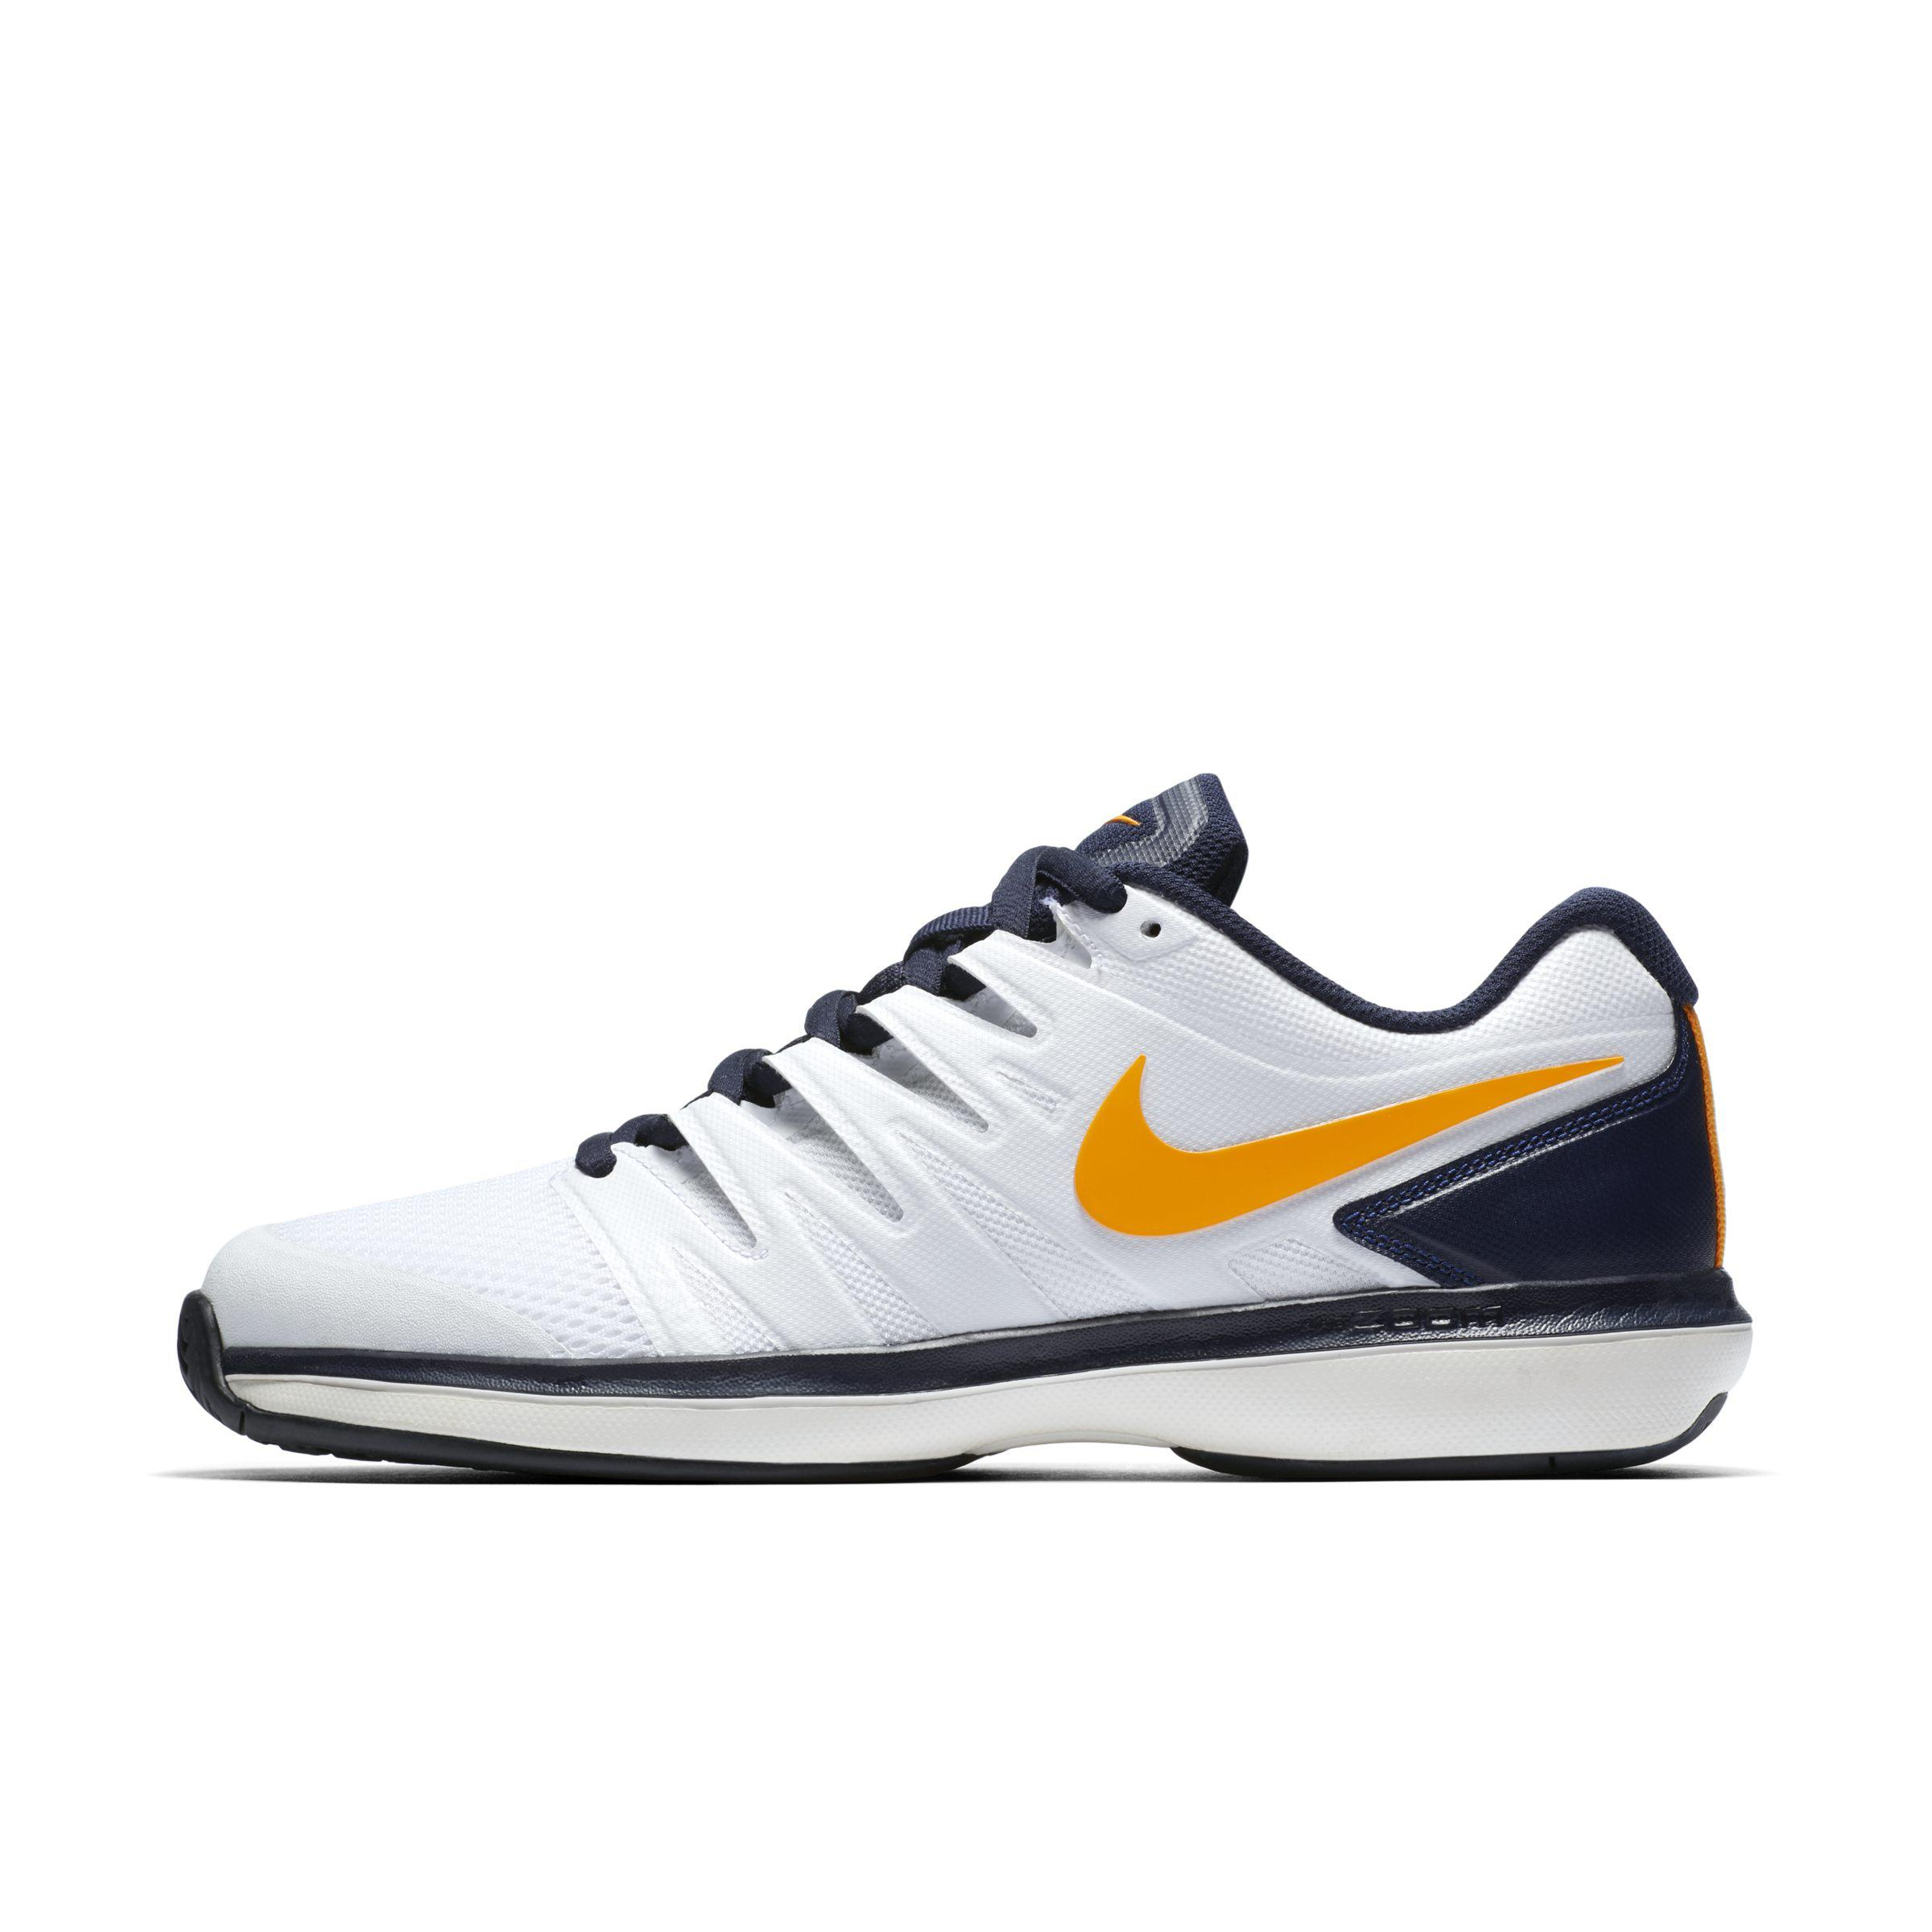 4e610e5401ea Nike Court Air Zoom Prestige Hard Court Tennis Shoe in White for Men ...